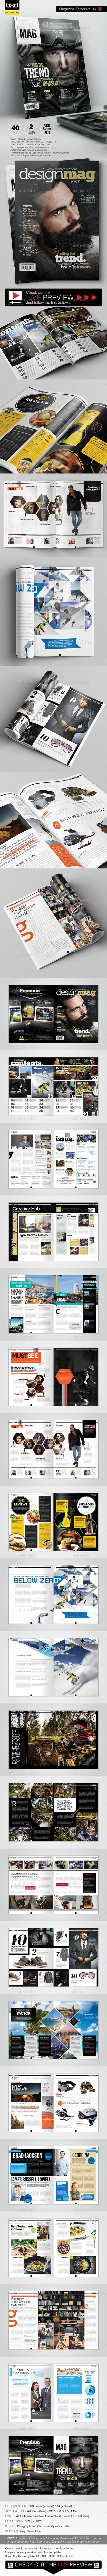 Magazine Template - InDesign 40 Page Layout #magazinetemplate #magazine Download: http://graphicriver.net/item/magazine-template-indesign-40-page-layout-v6/10374588?ref=ksioks